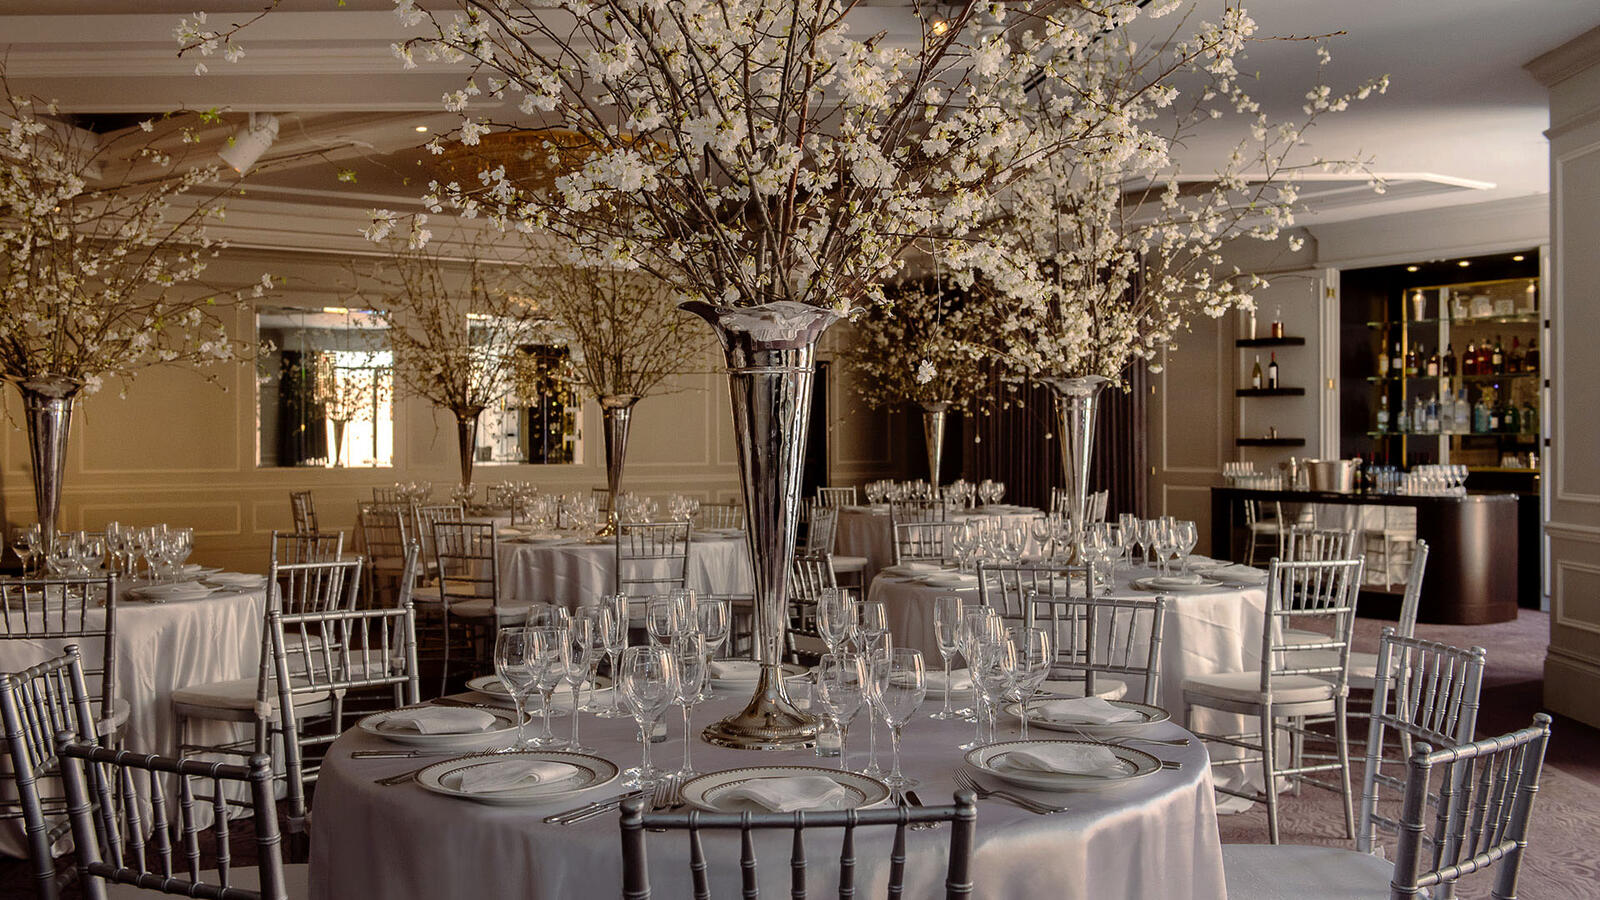 Tables laid for Wedding breakfast with Spring flower center pieces